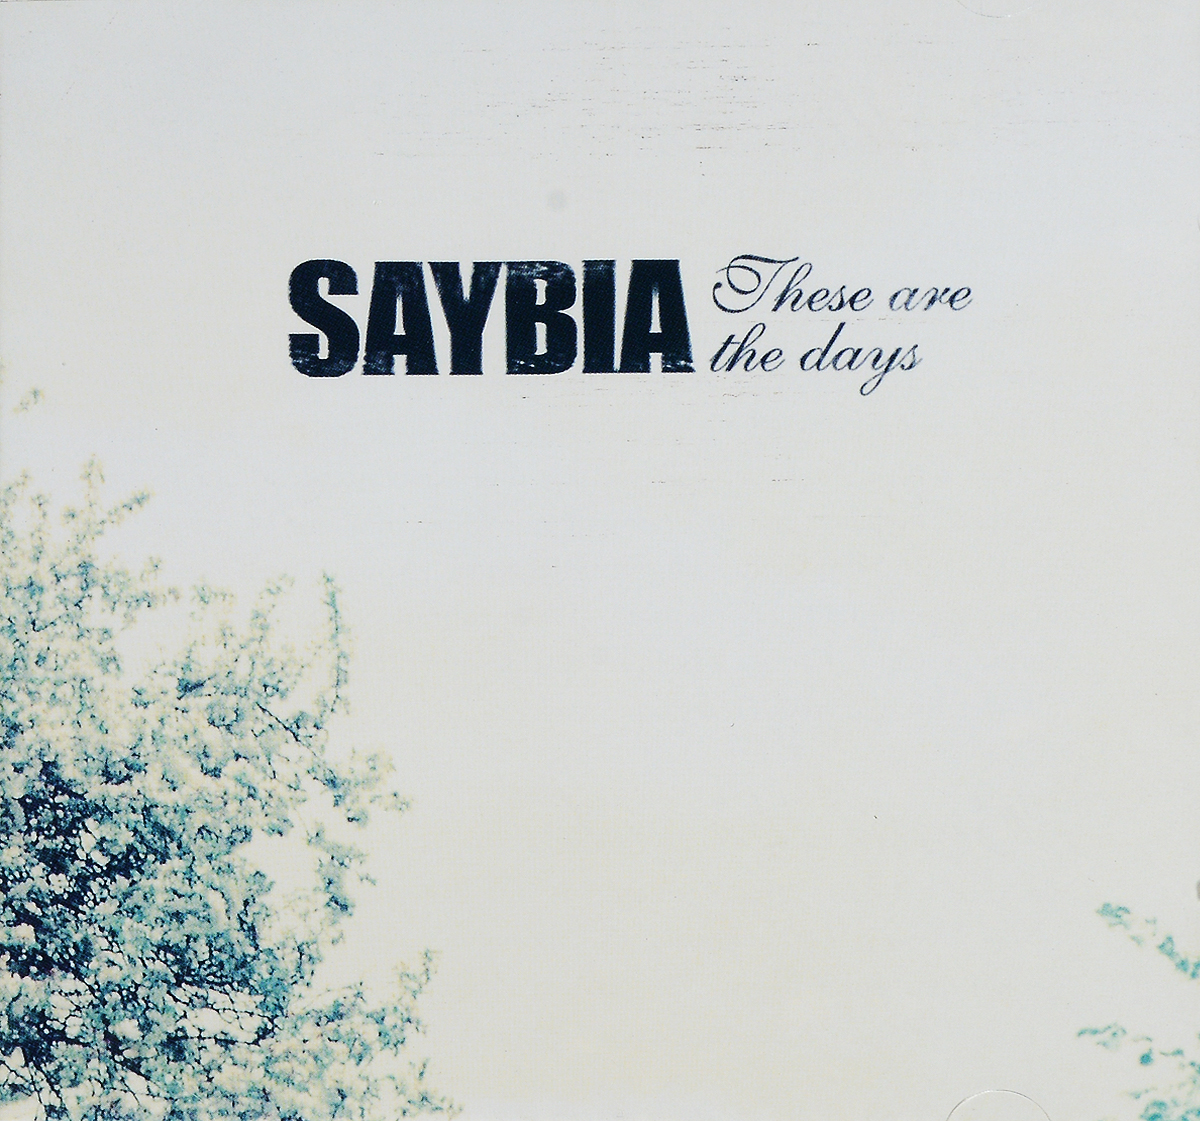 Saybia SAYBIA. THESE ARE THE DAYS these days are ours